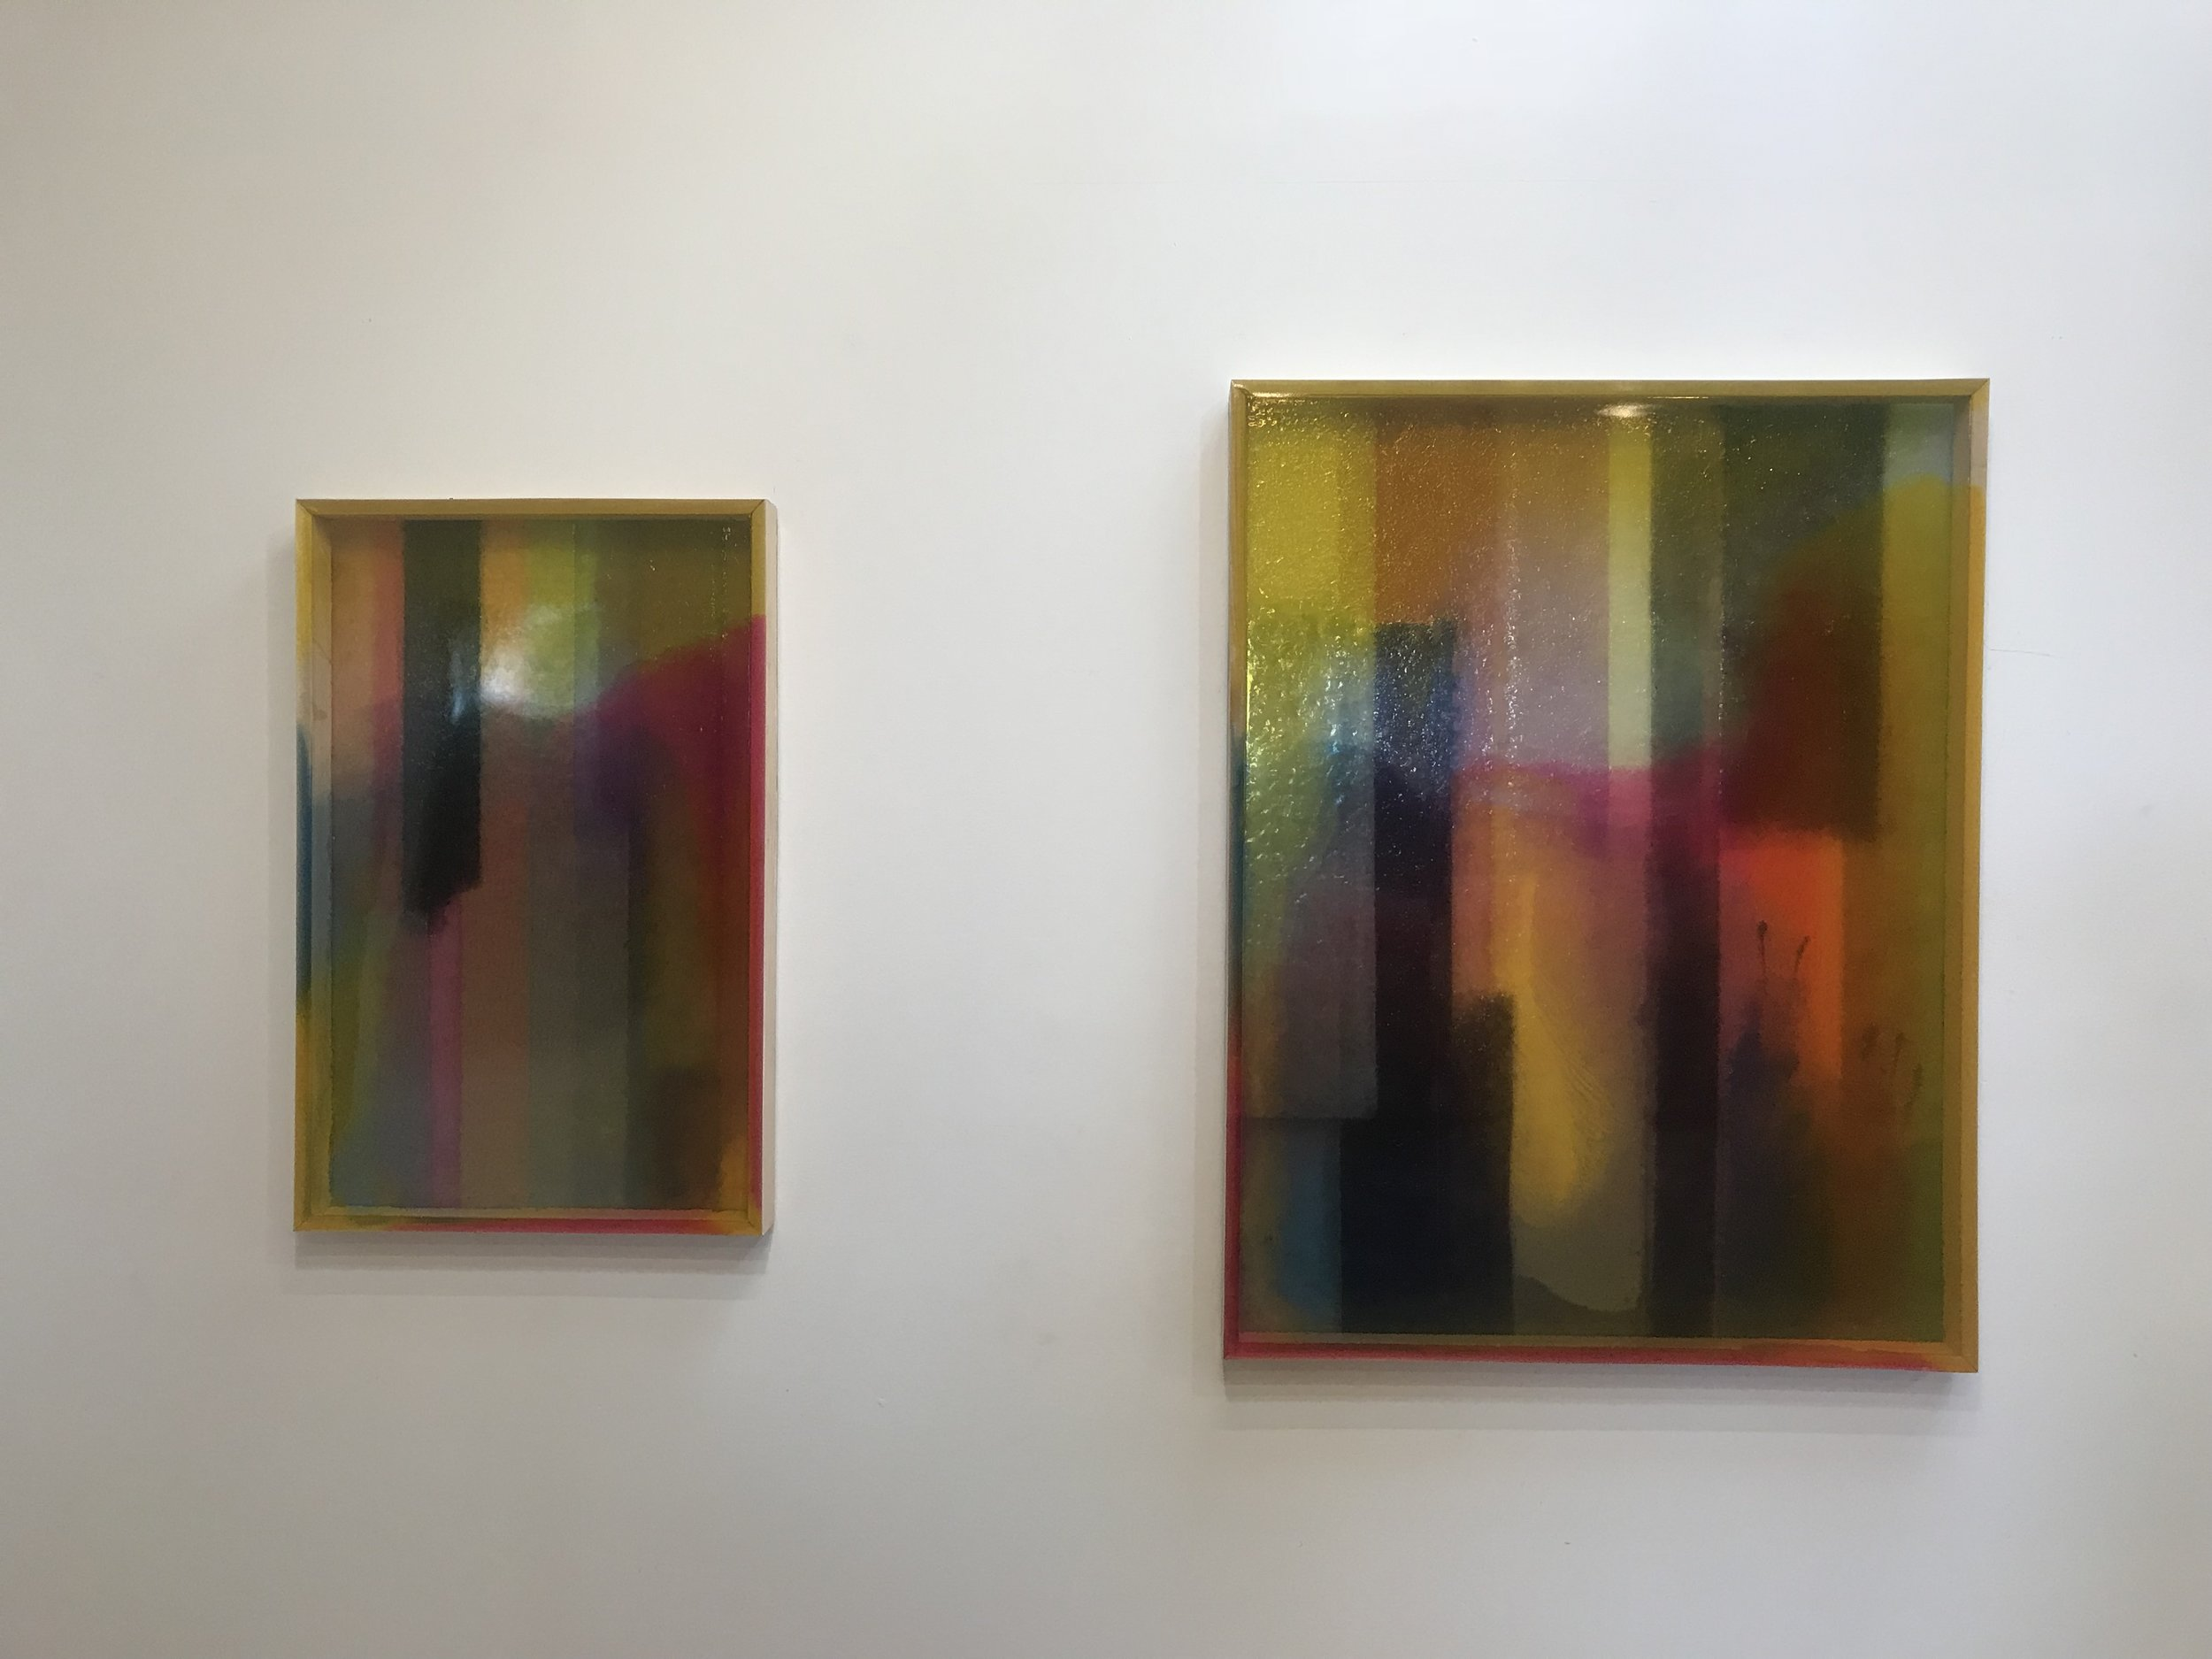 scale and Diptych observe unforgotten parts